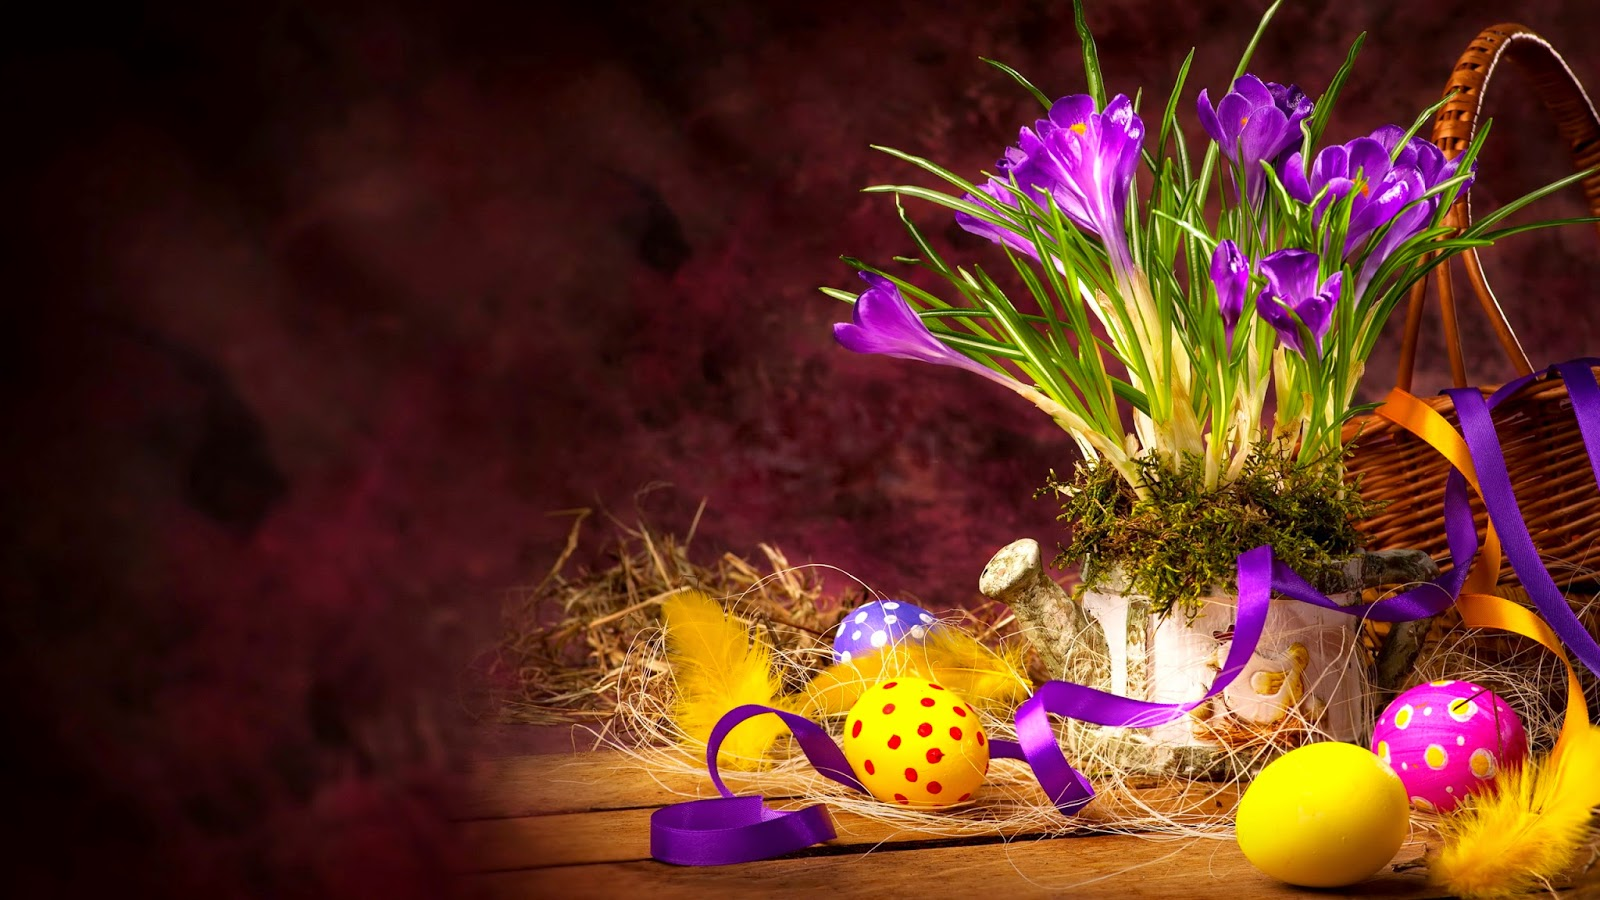 Happy Easter Hd Hd Happy Easter Wallpaper Download Free 3d Easter